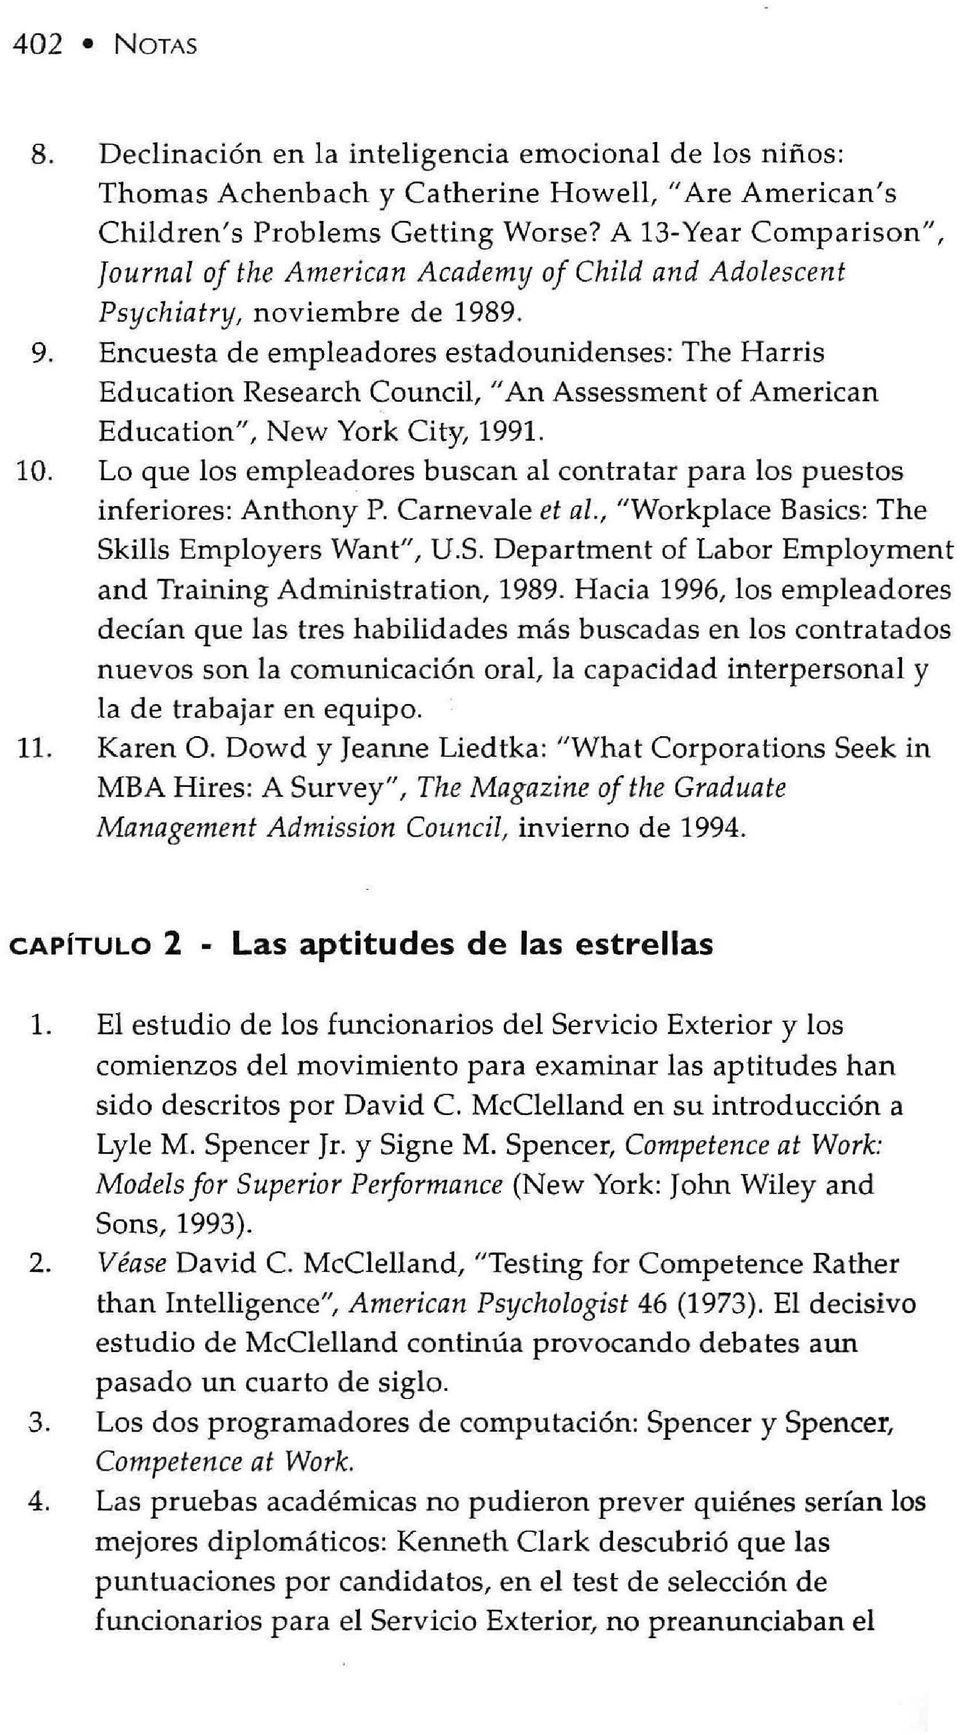 "Encuesta de empleadores estadounidenses: The Harris Education Research Council, ""An Assessment of American Education"", New York City, 1991. 10."